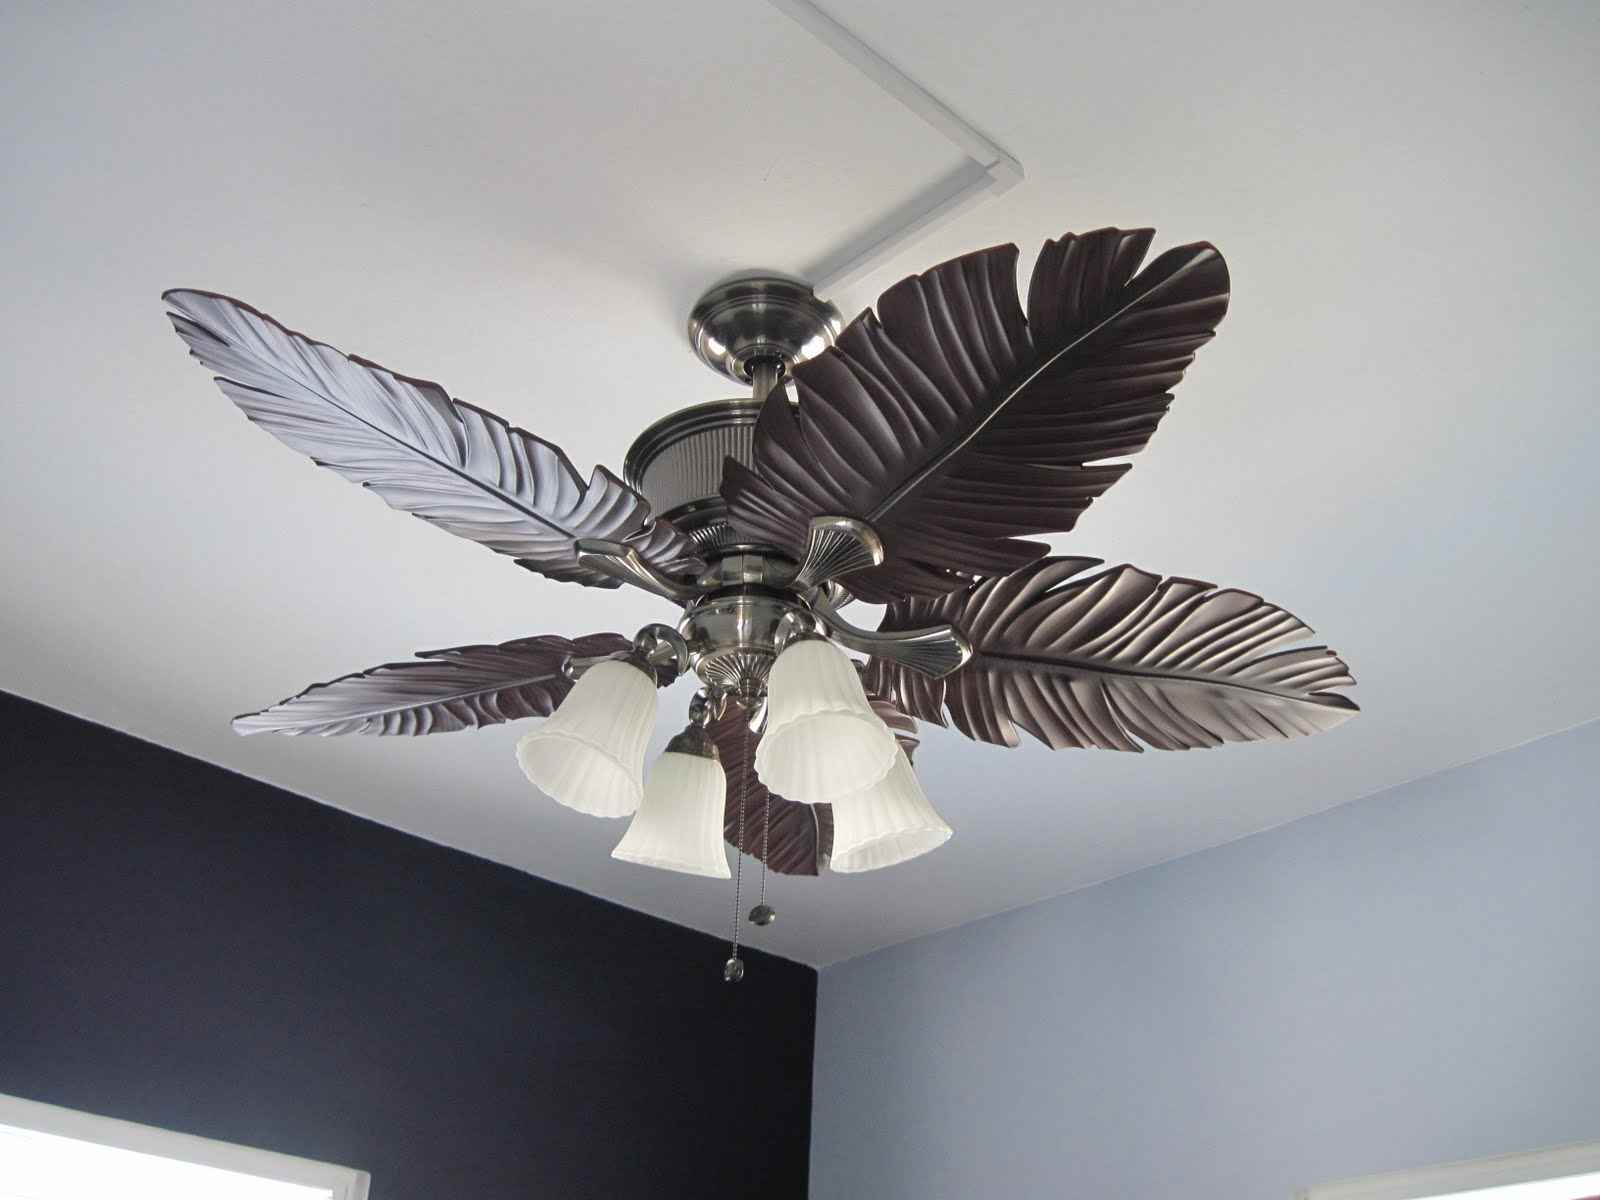 Merveilleux Artistic Carving On Elegant Modern Ceiling Fans Installed On White Painted  Ceiling In Fantastic Room